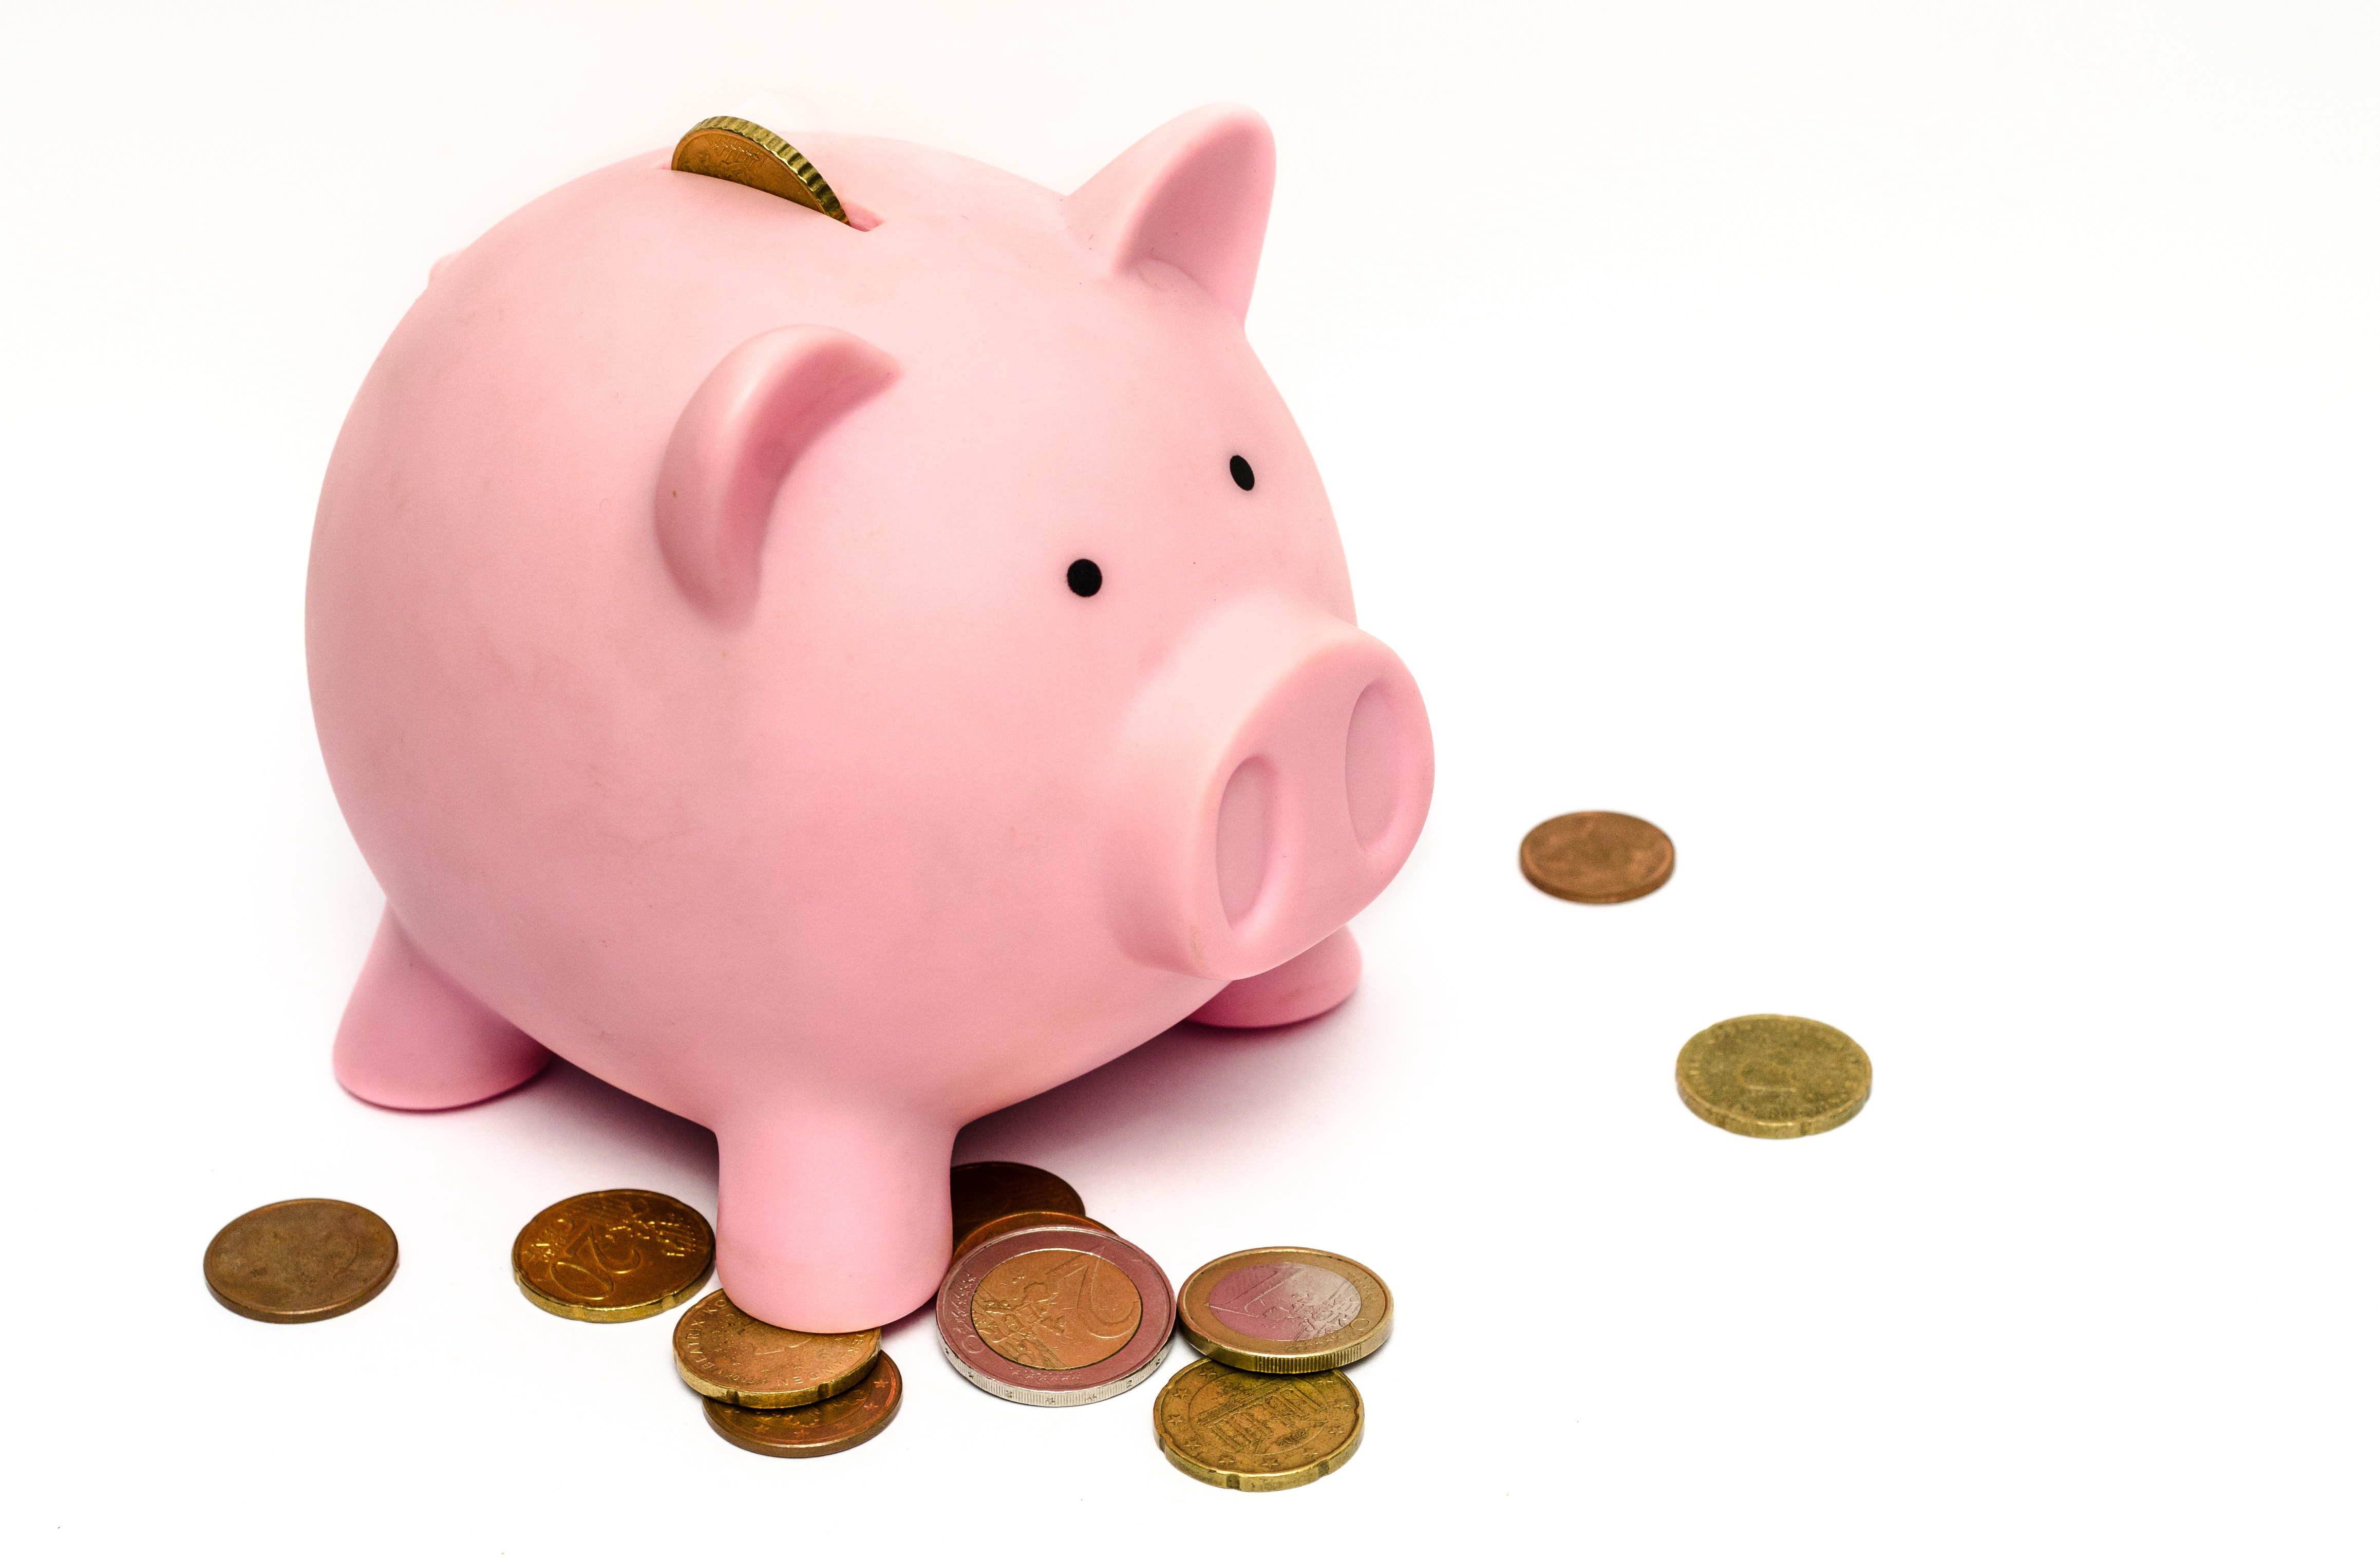 Piggy Bank With Coins · Free Stock Photo